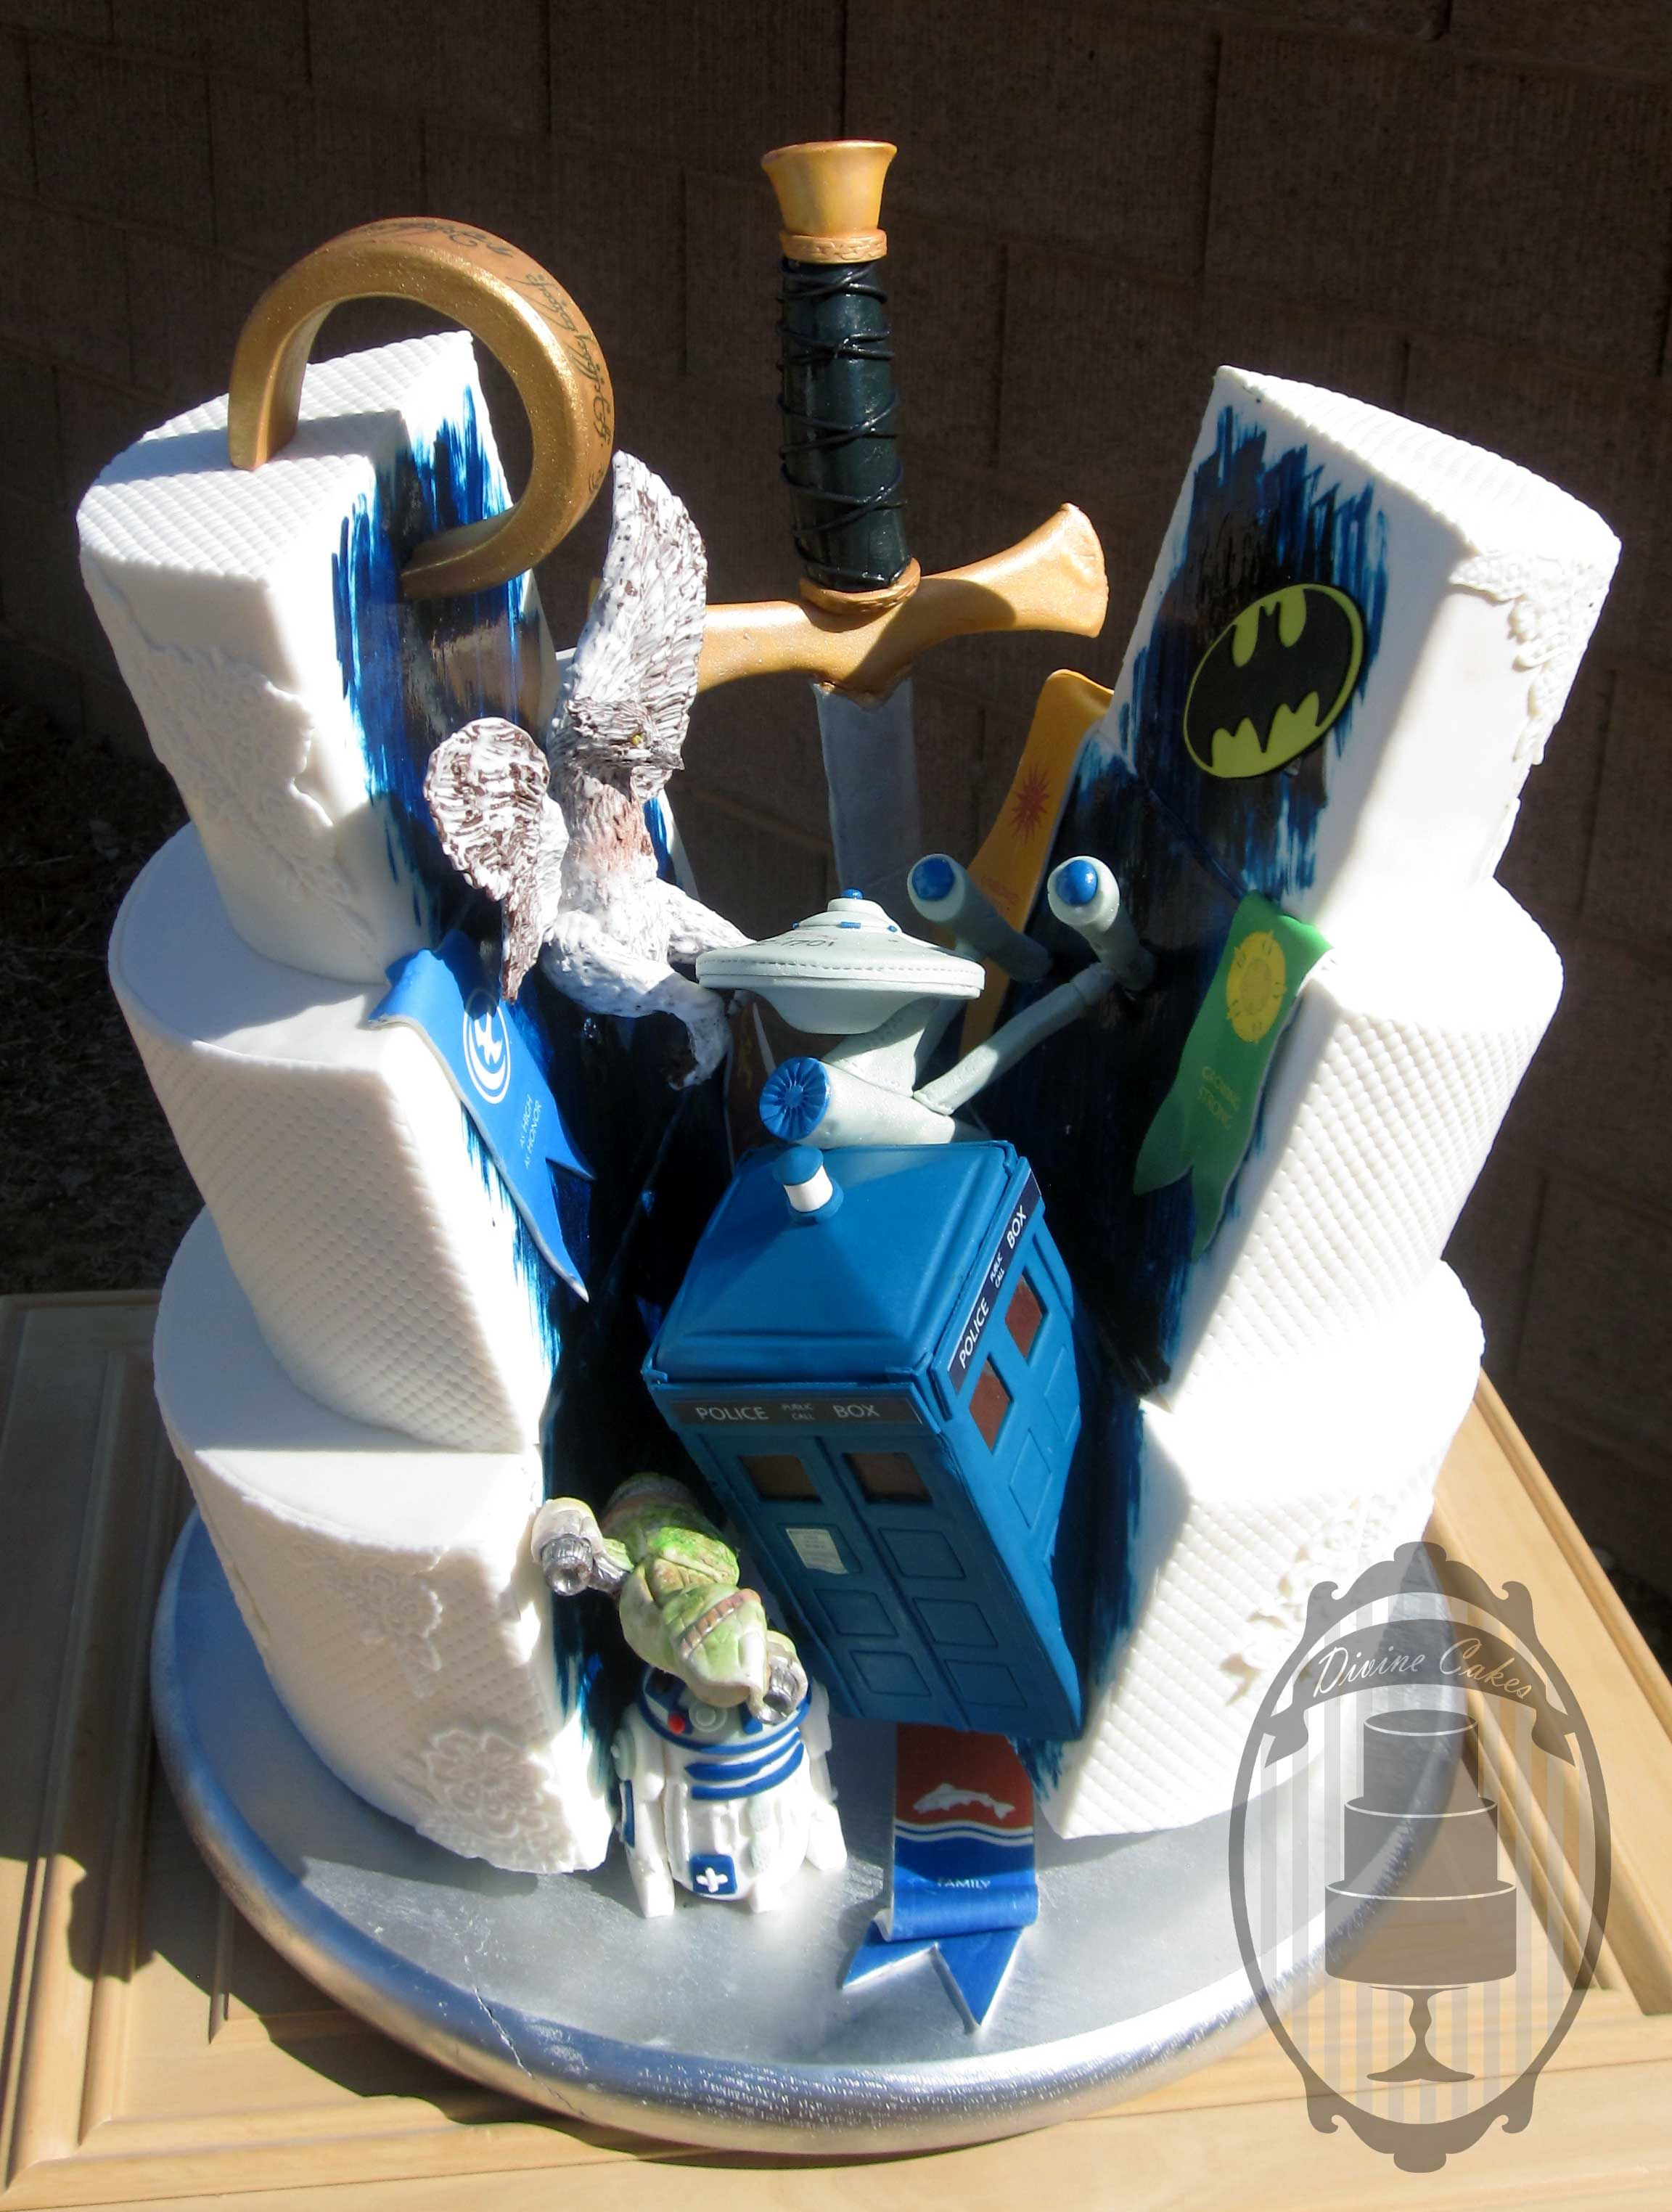 Nerdy wedding cake with tardis one ring games of thrones r2d2